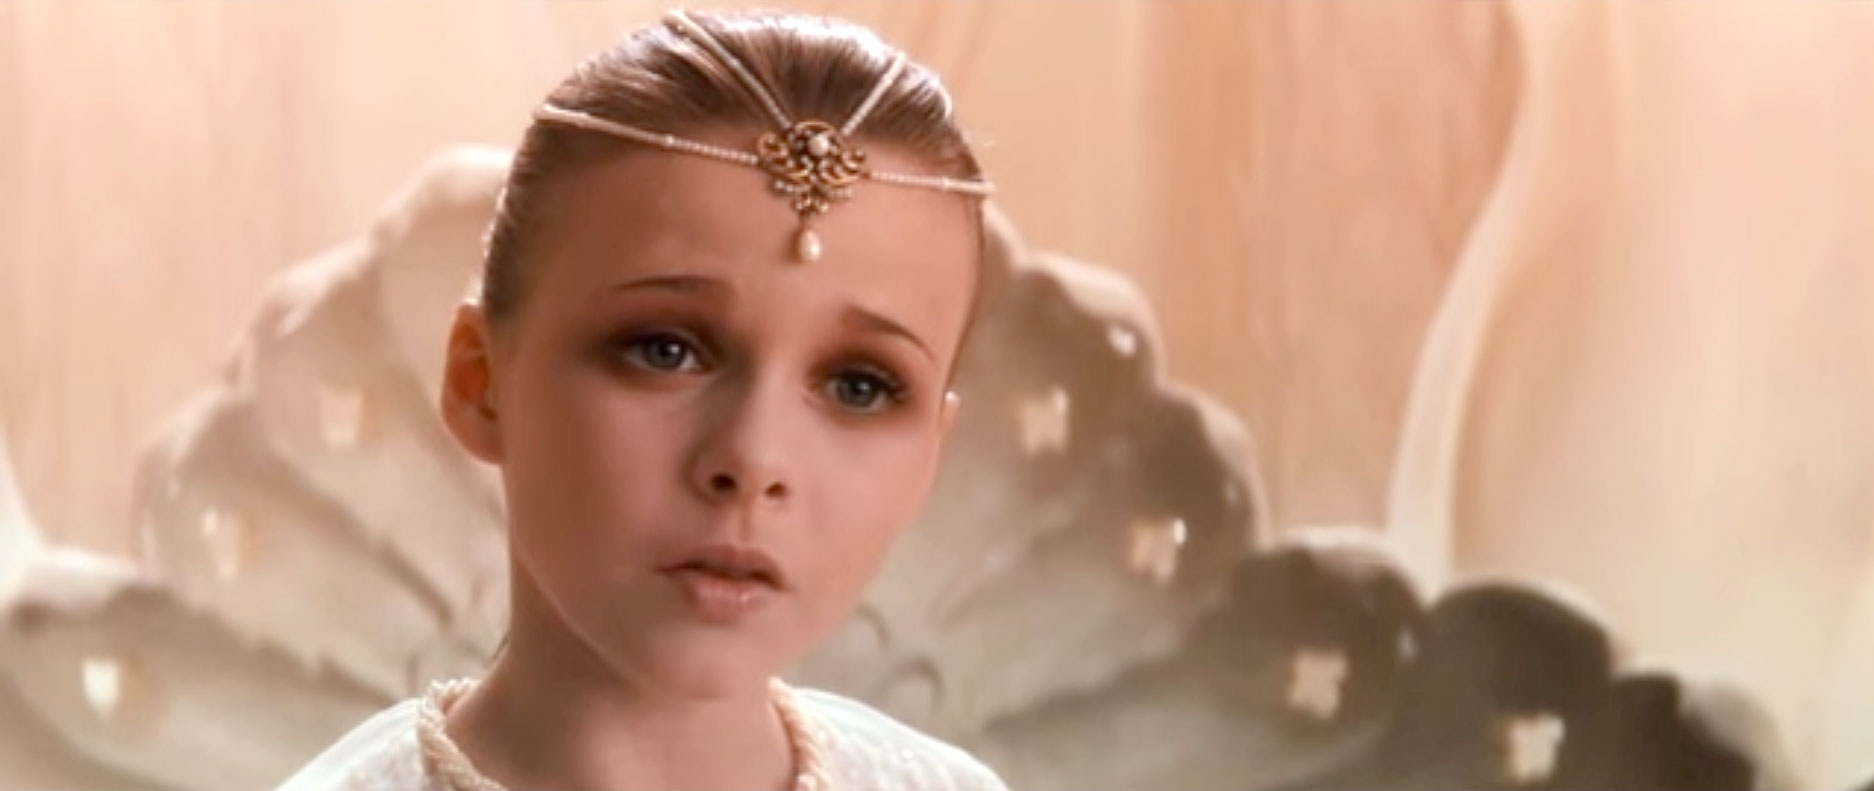 the childlike empress from the neverending story grew up to be a